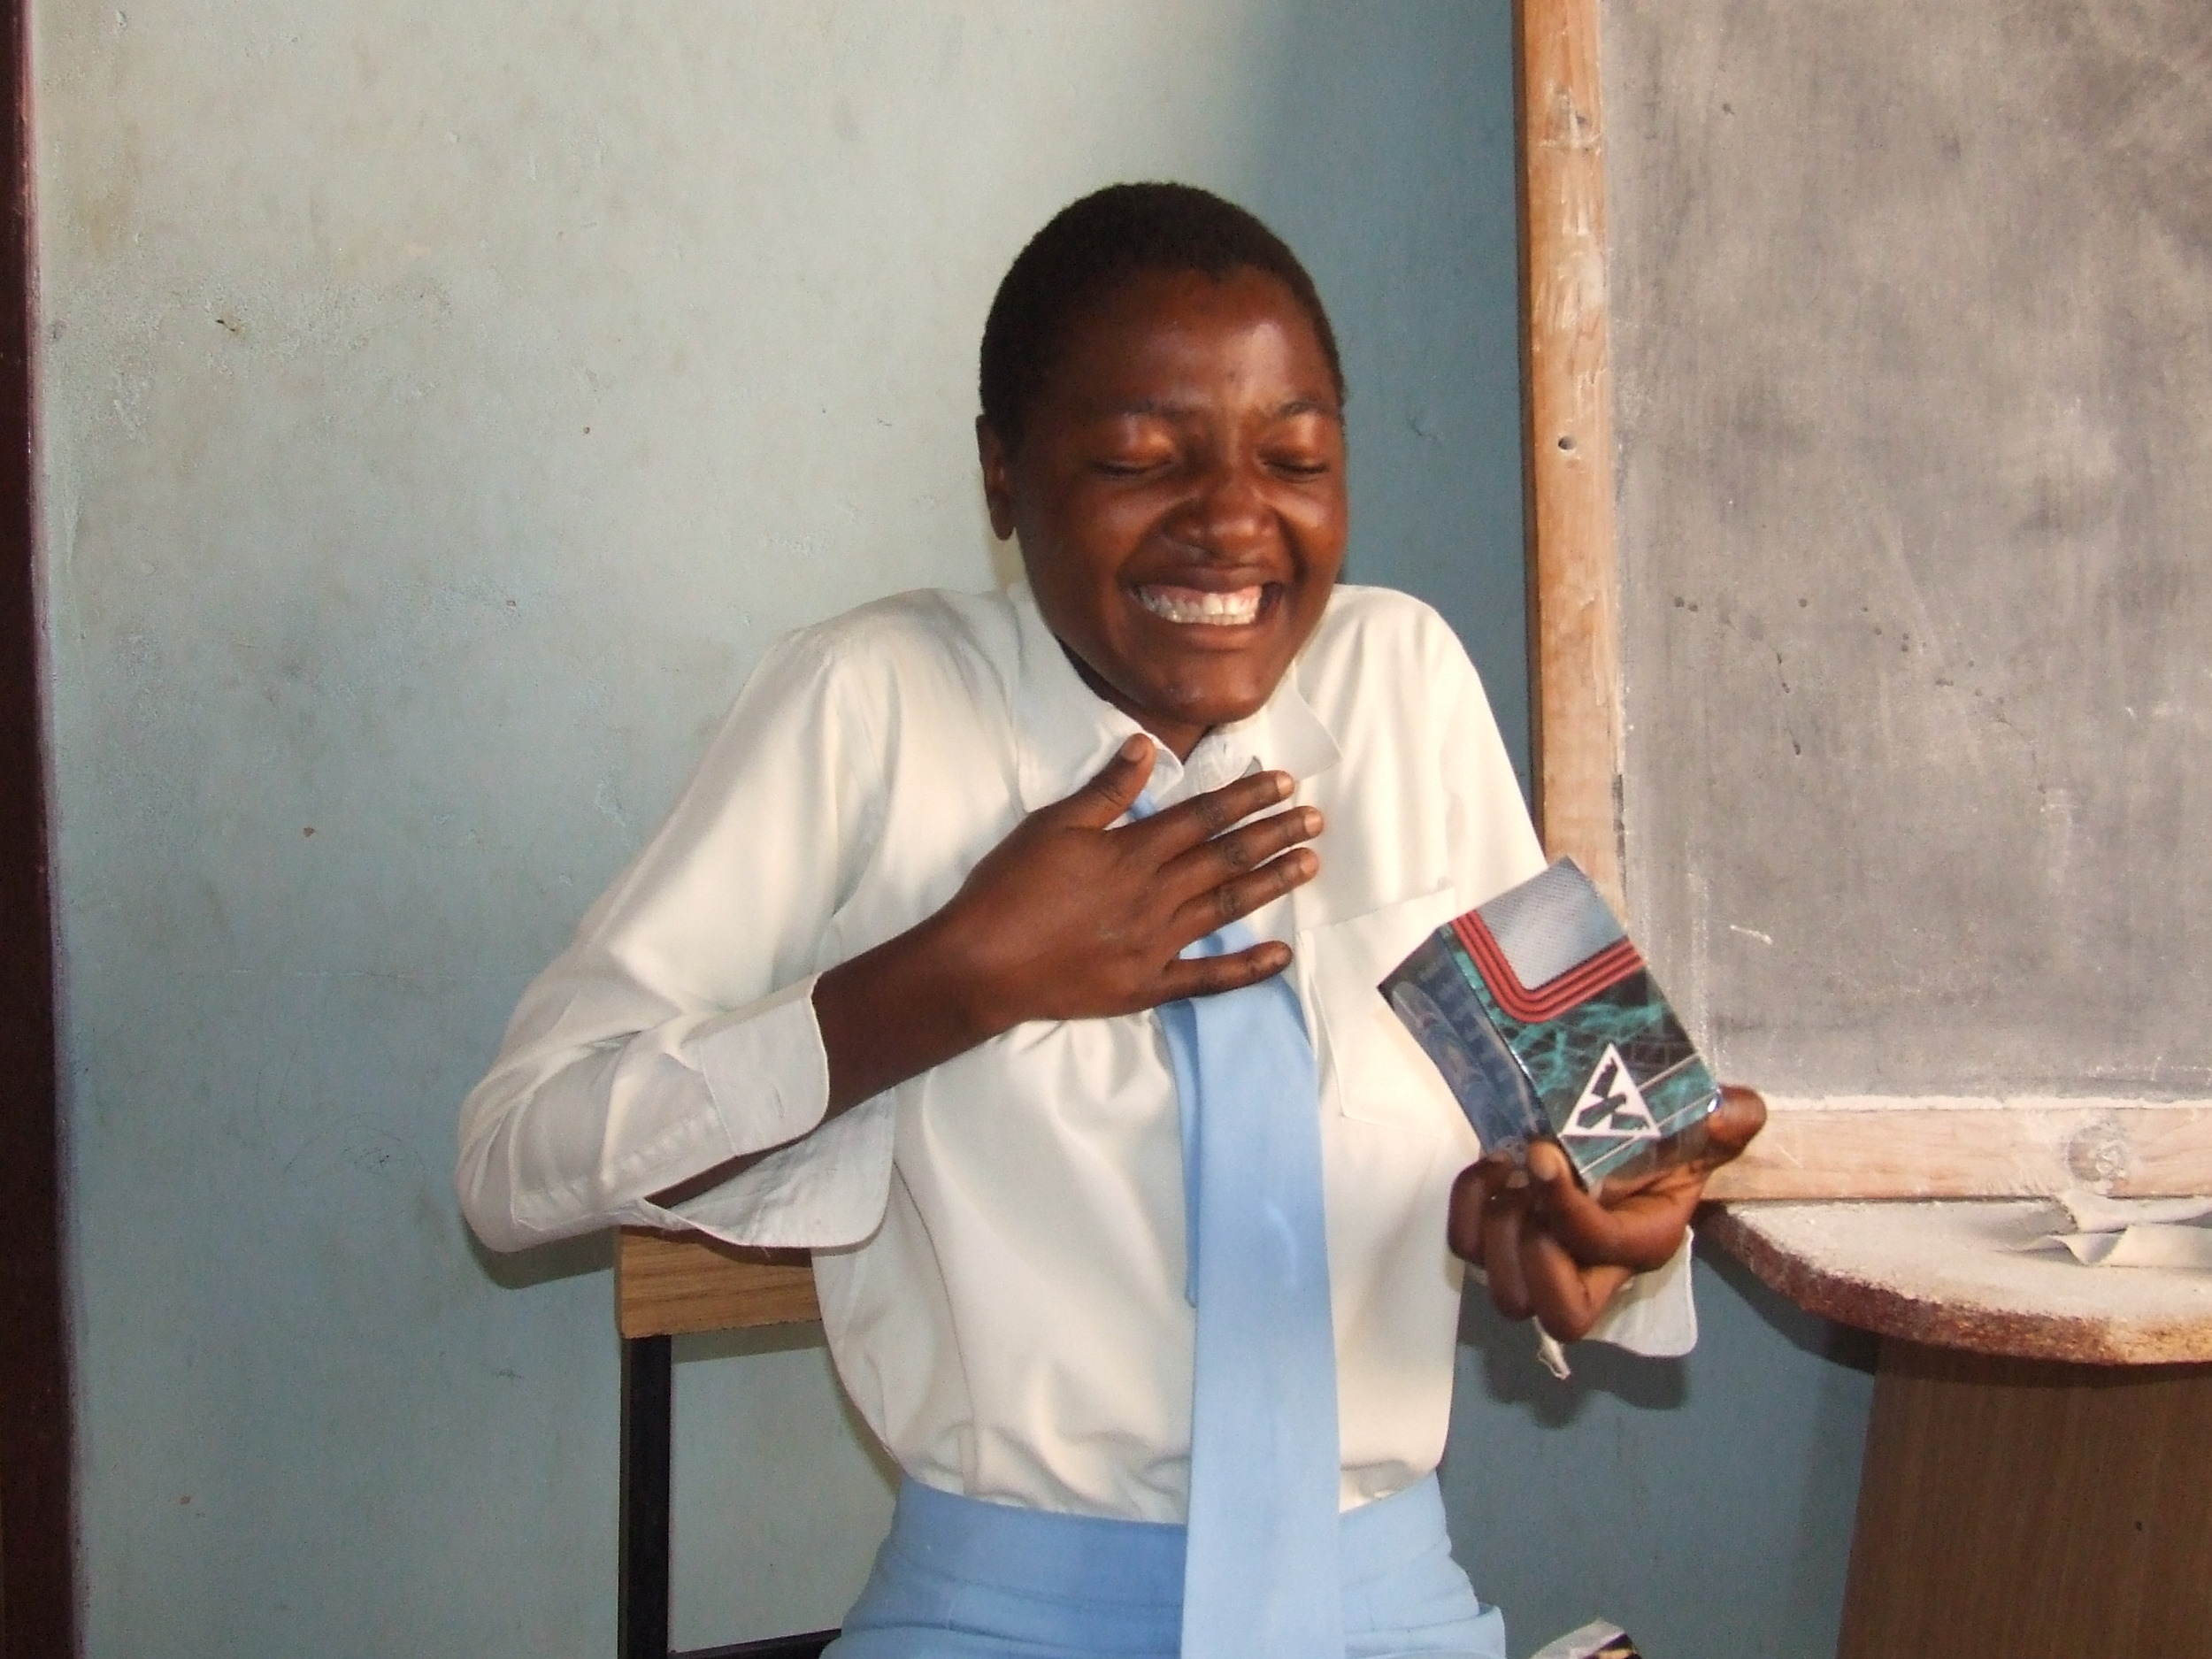 Gladys is ecstatic to have a received a letter and small gift from her sponsor.